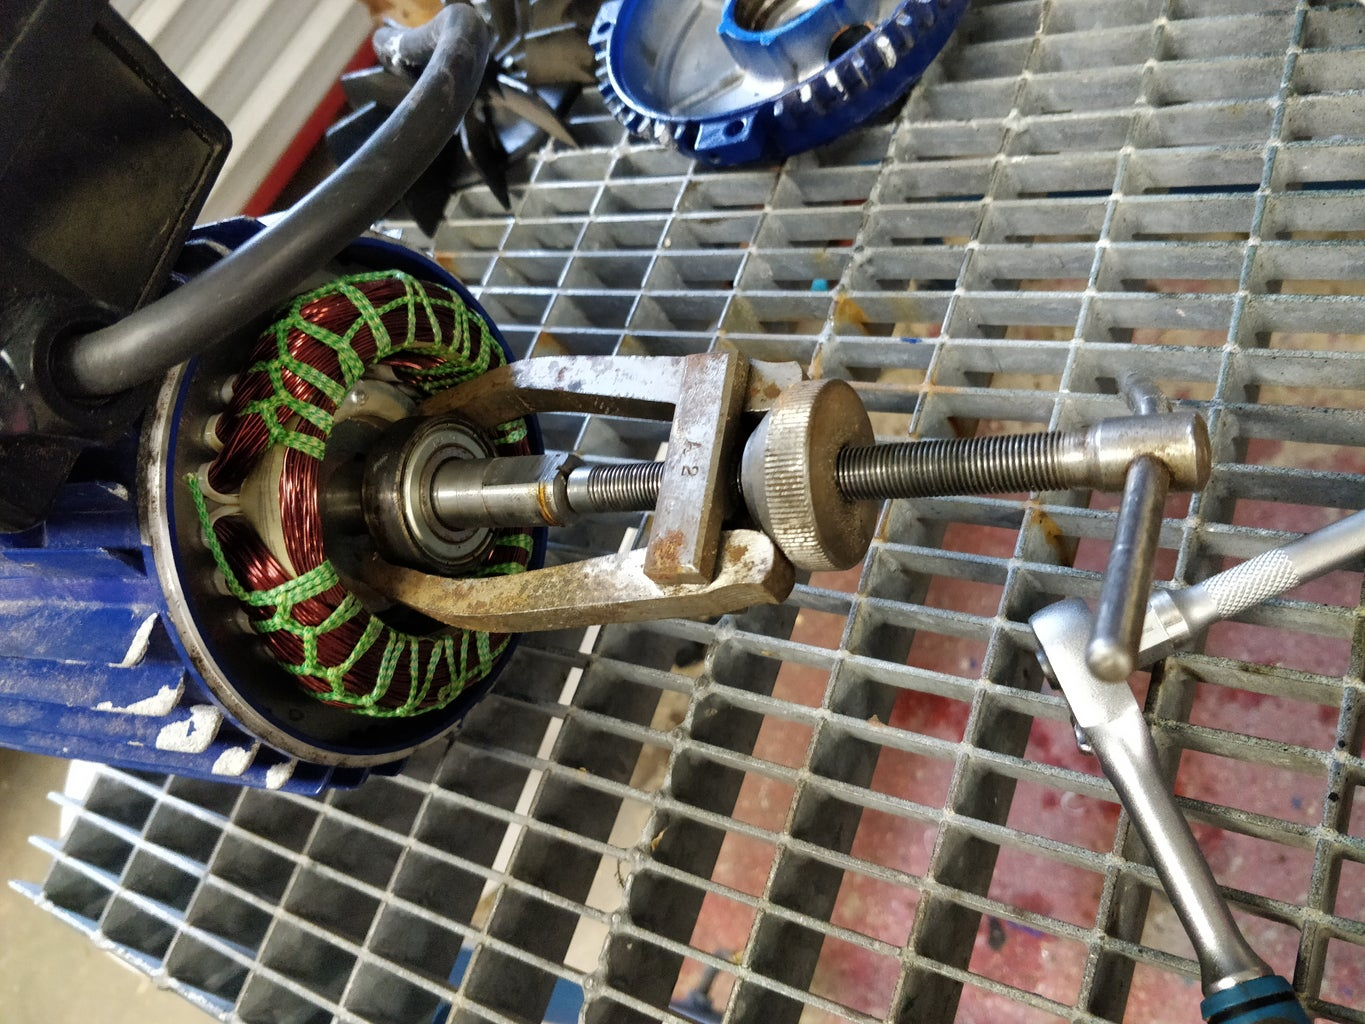 Remove the Motors Rear End Cover, and the Rear Bearing